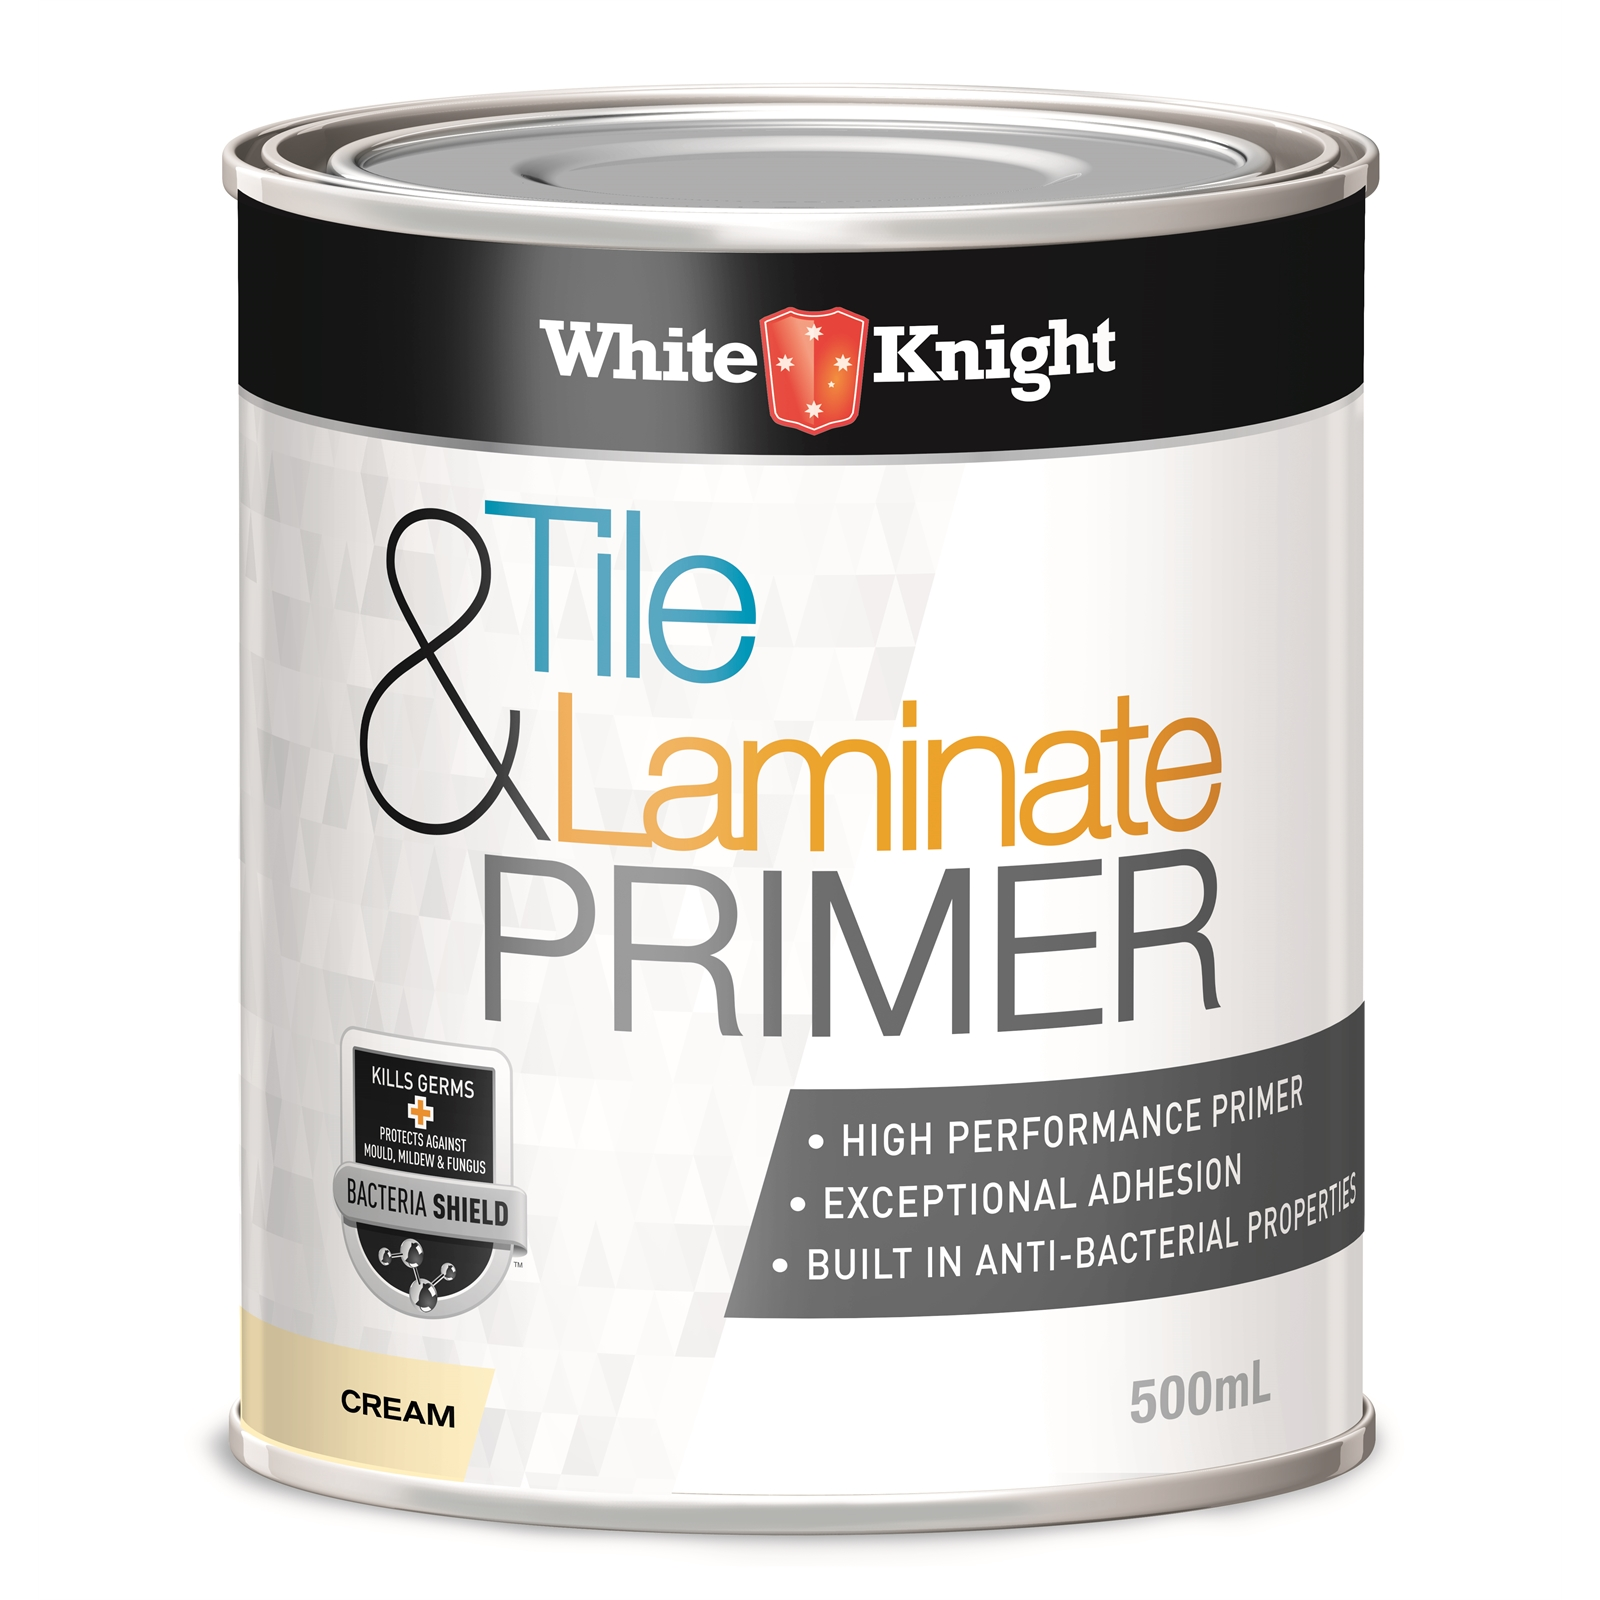 White Knight Tile Reviews Productreview Com Au